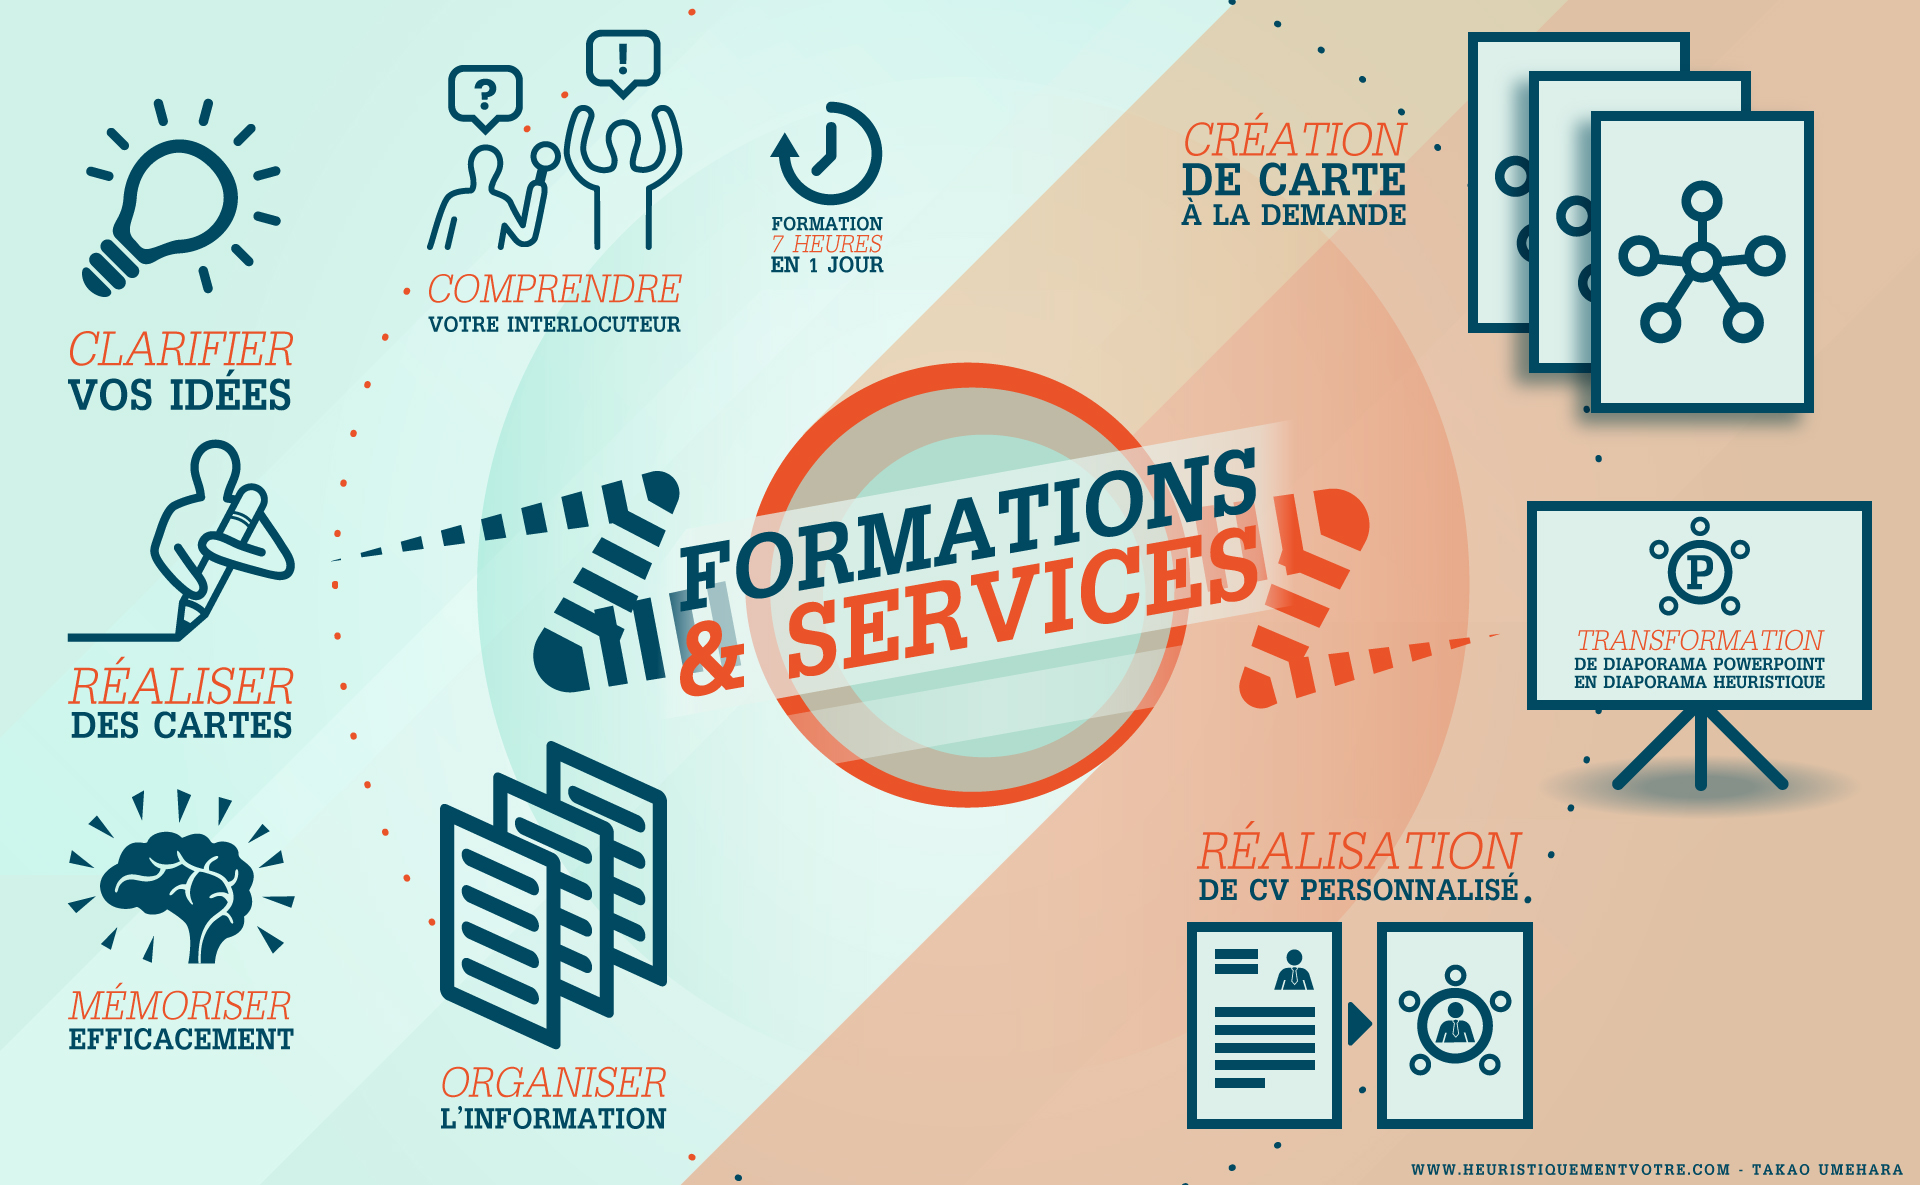 FORMATIONS ET SERVICES